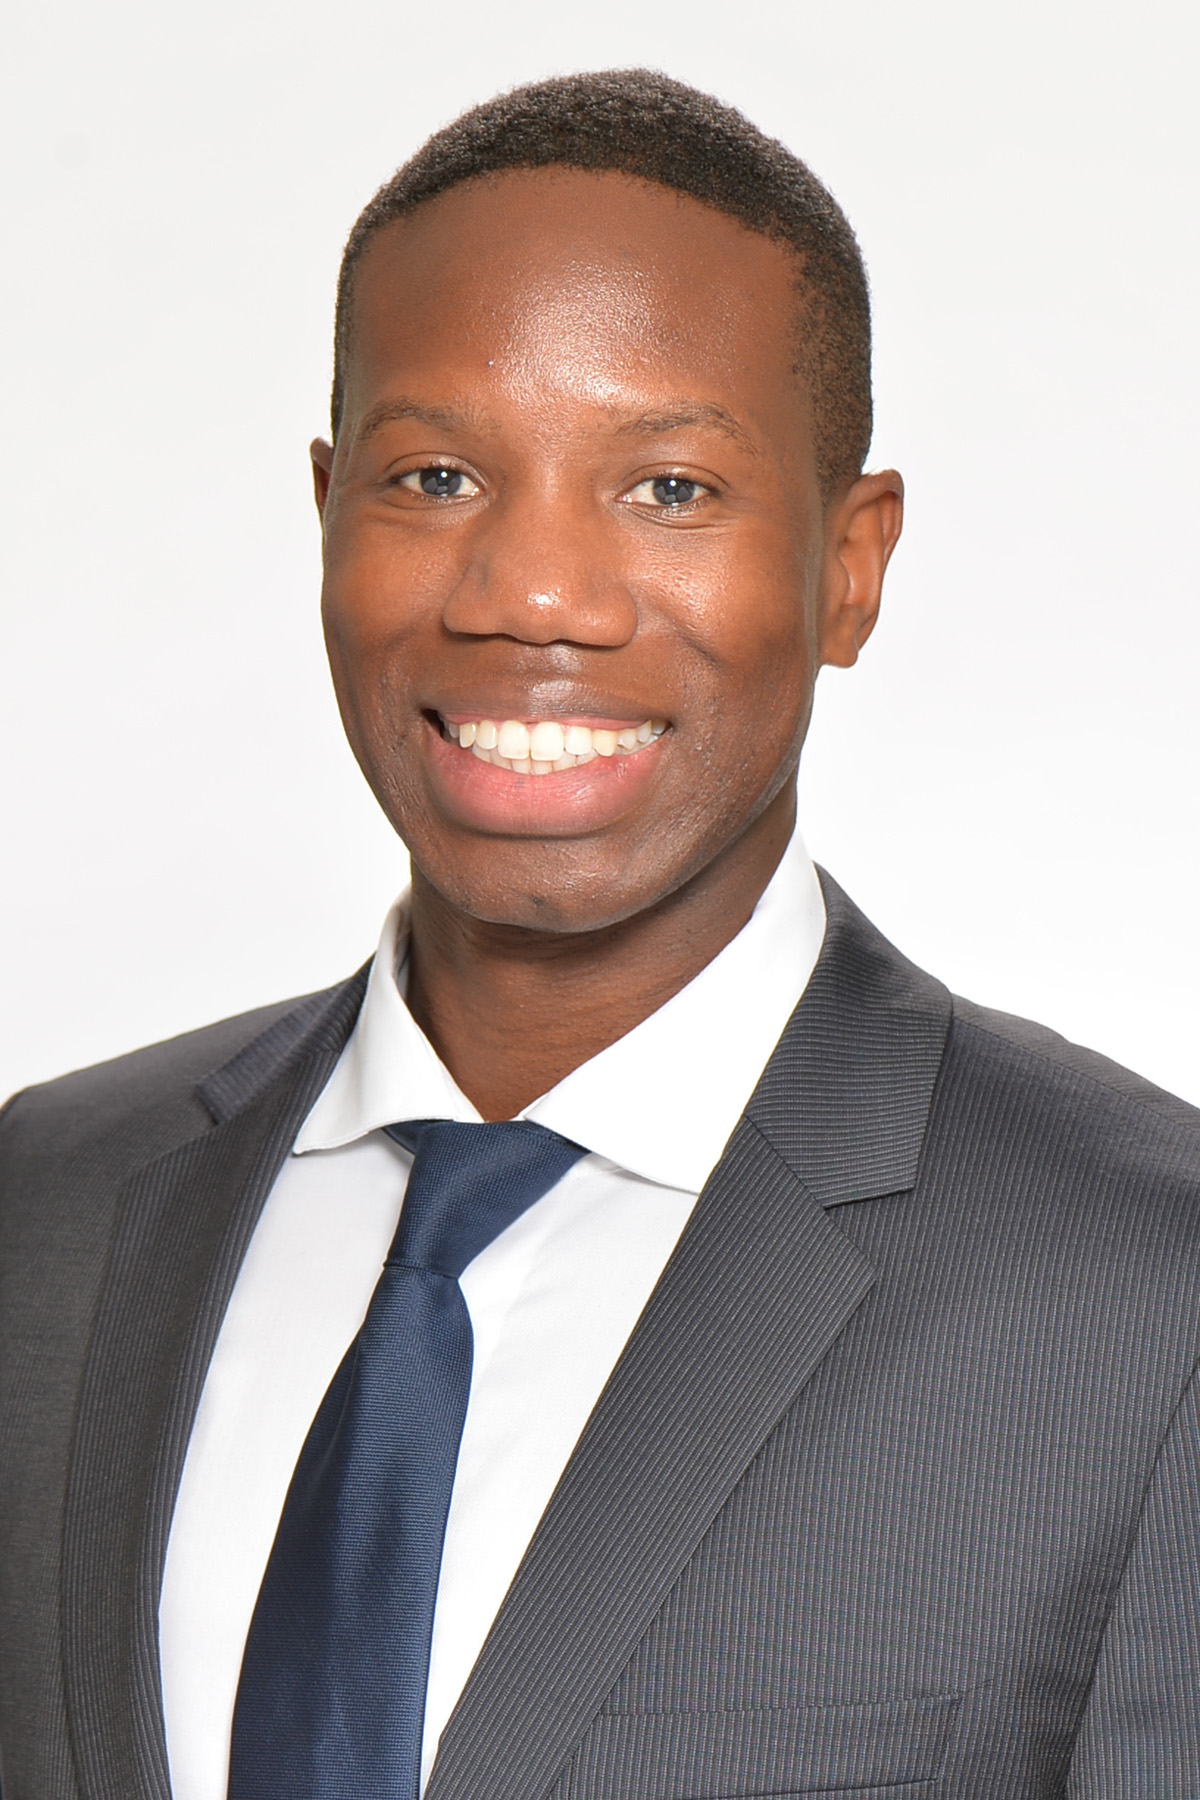 Tyrone Ross '20, MBA Candidate at Chicago Booth